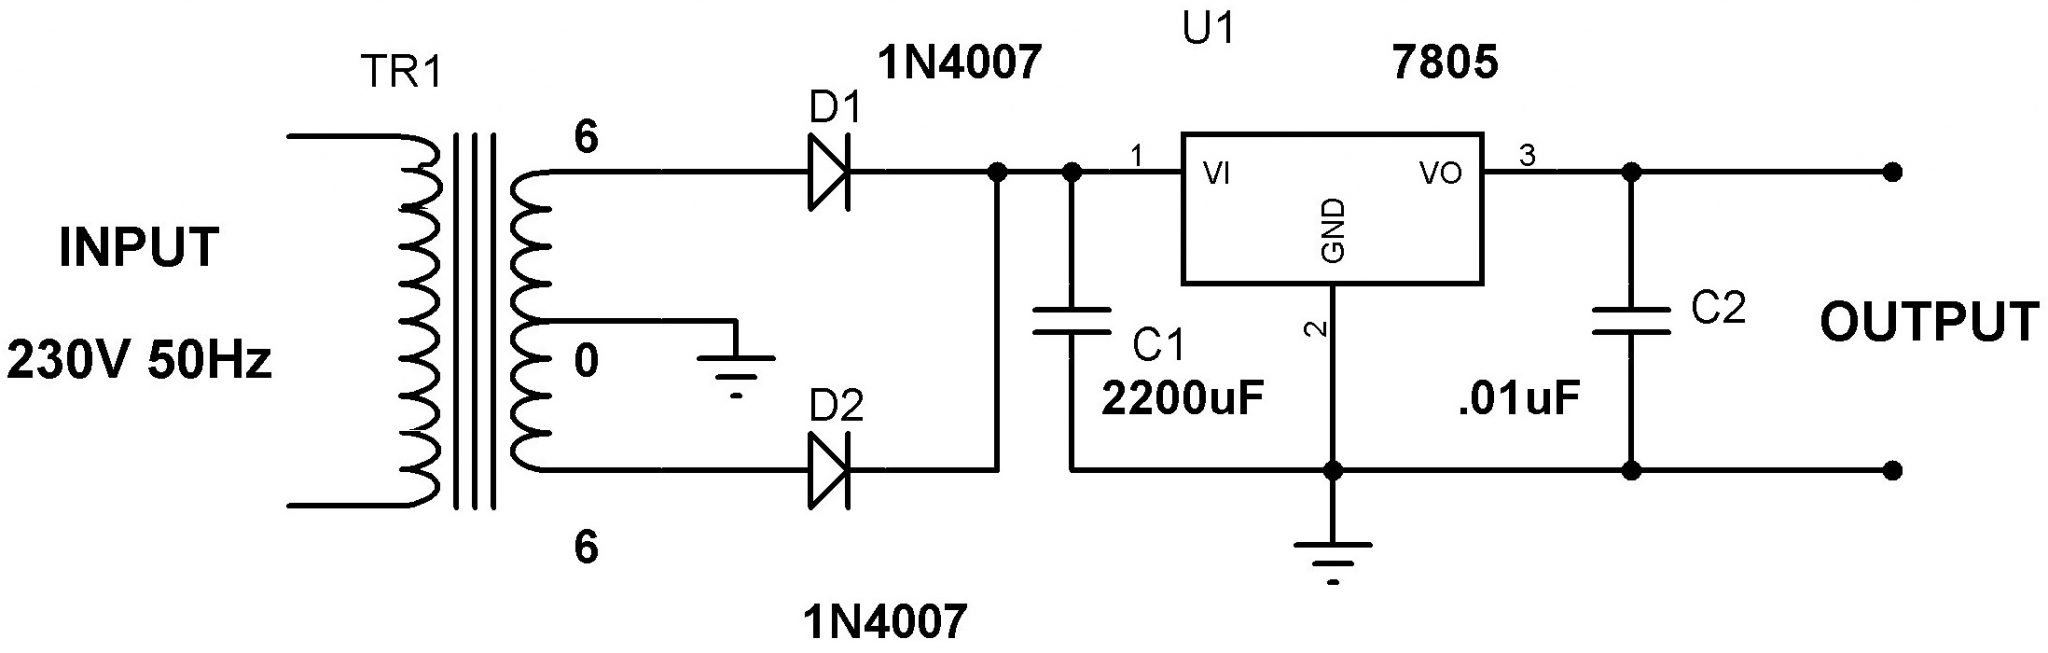 5v Power Supply Using 7805 Voltage Regulator With Design Ac Current Source Circuit